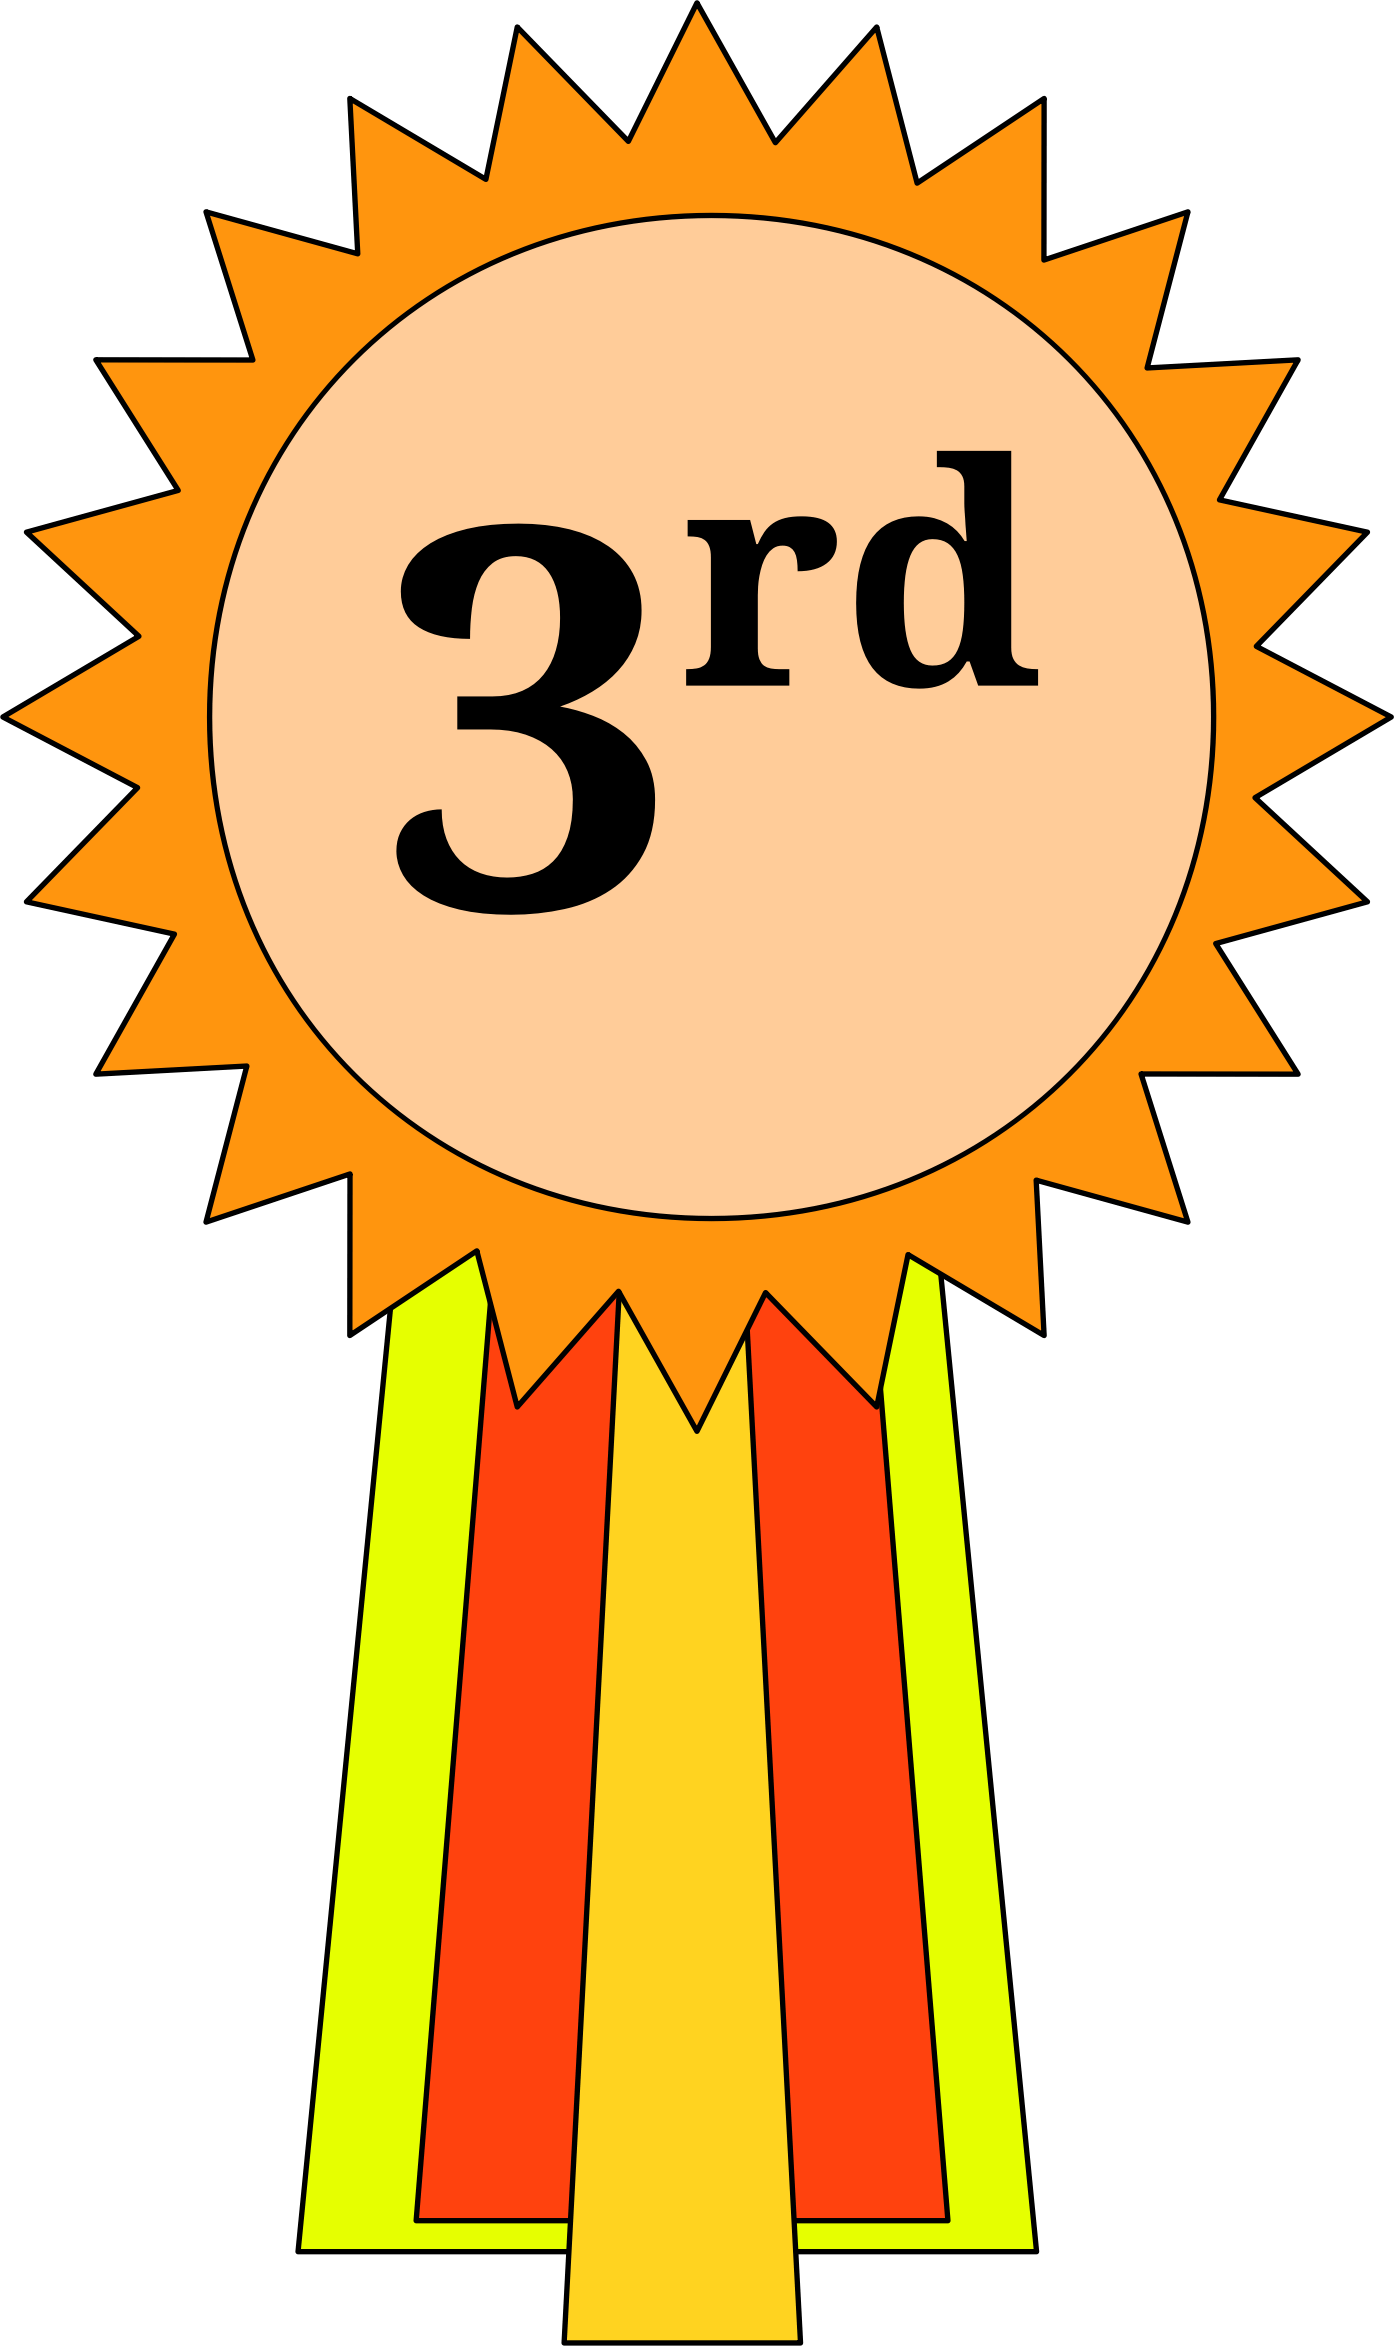 1st 2nd 3rd Podium : podium, Podium, Clipart, First, Place,, Place, Transparent, Download, WebStockReview